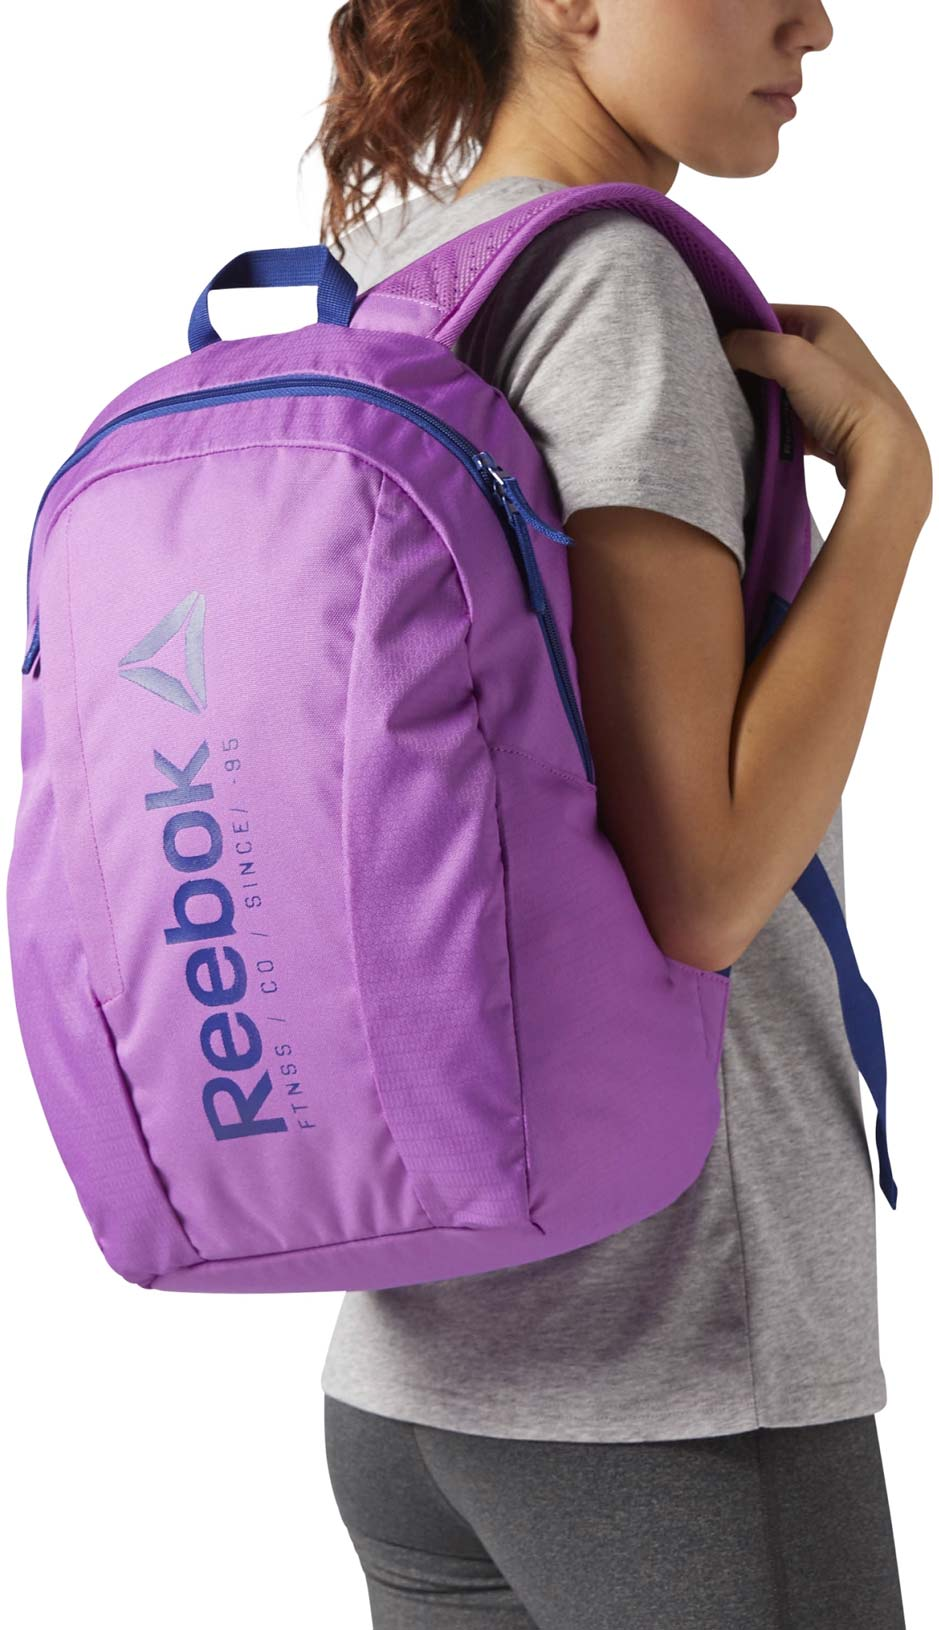 bf13995d48 Reebok FOUNDATION MEDIUM BPK. Backpack. Backpack. Backpack. Backpack.  Backpack. Backpack. Backpack. Backpack